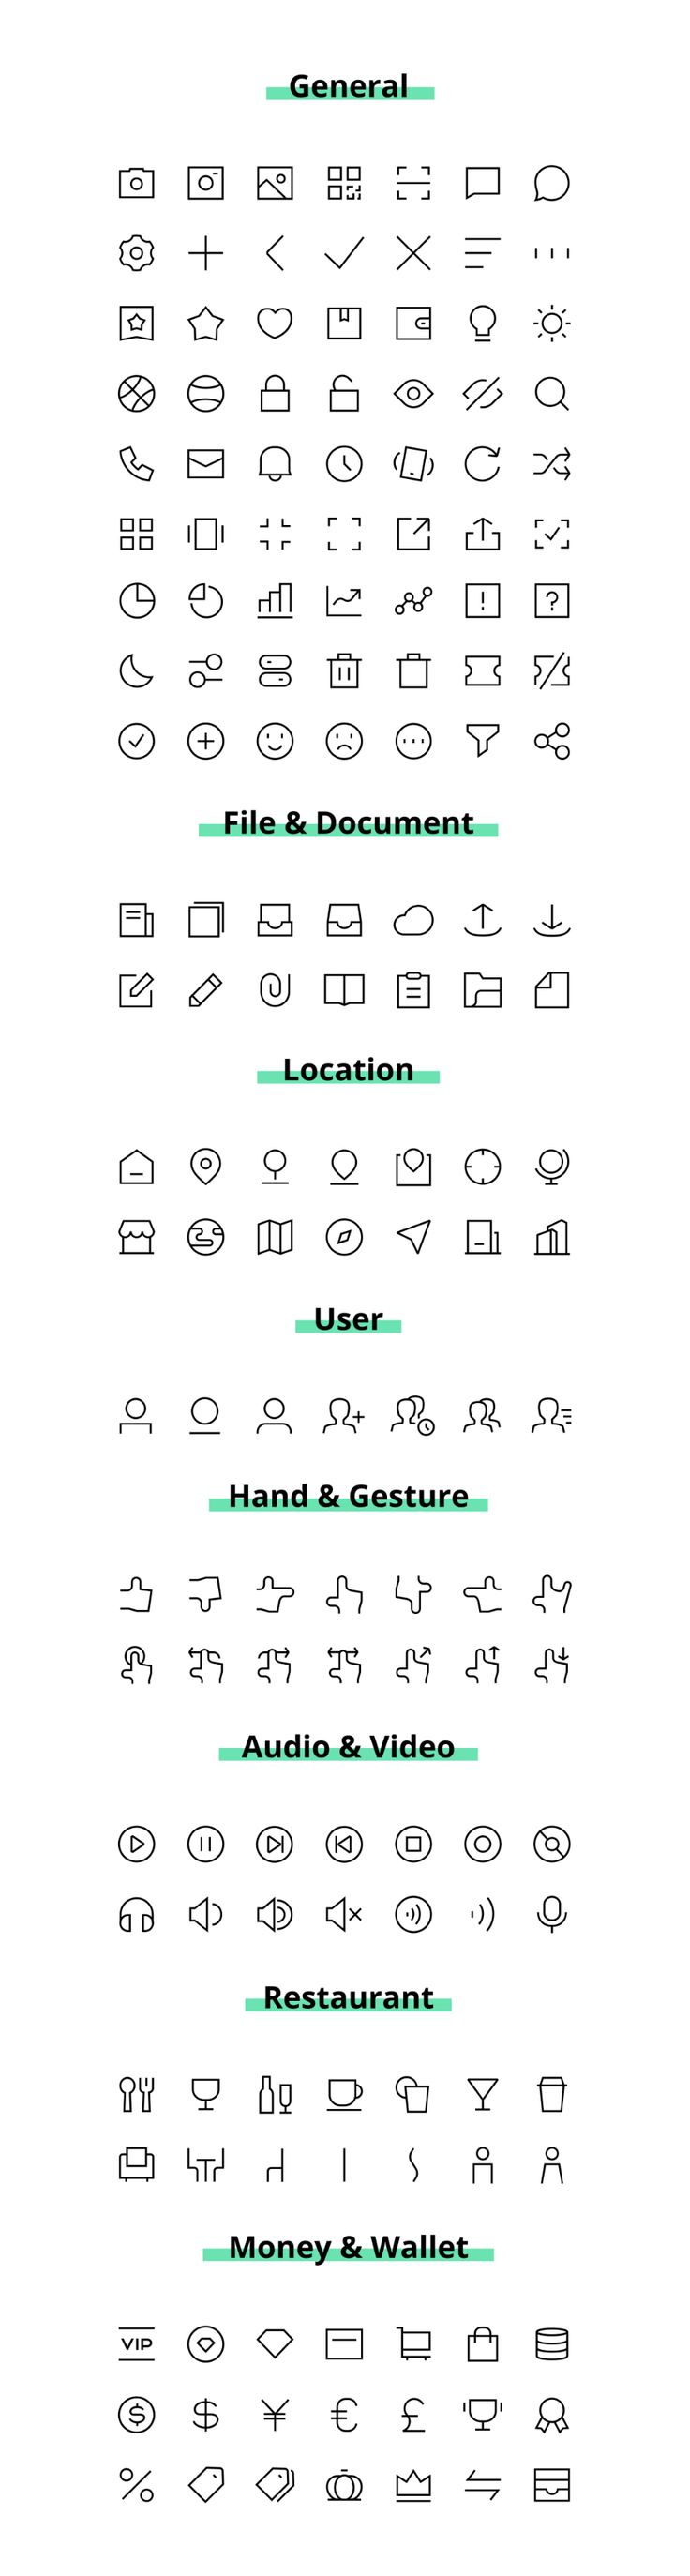 Cagoicon Free Vector UI Icons